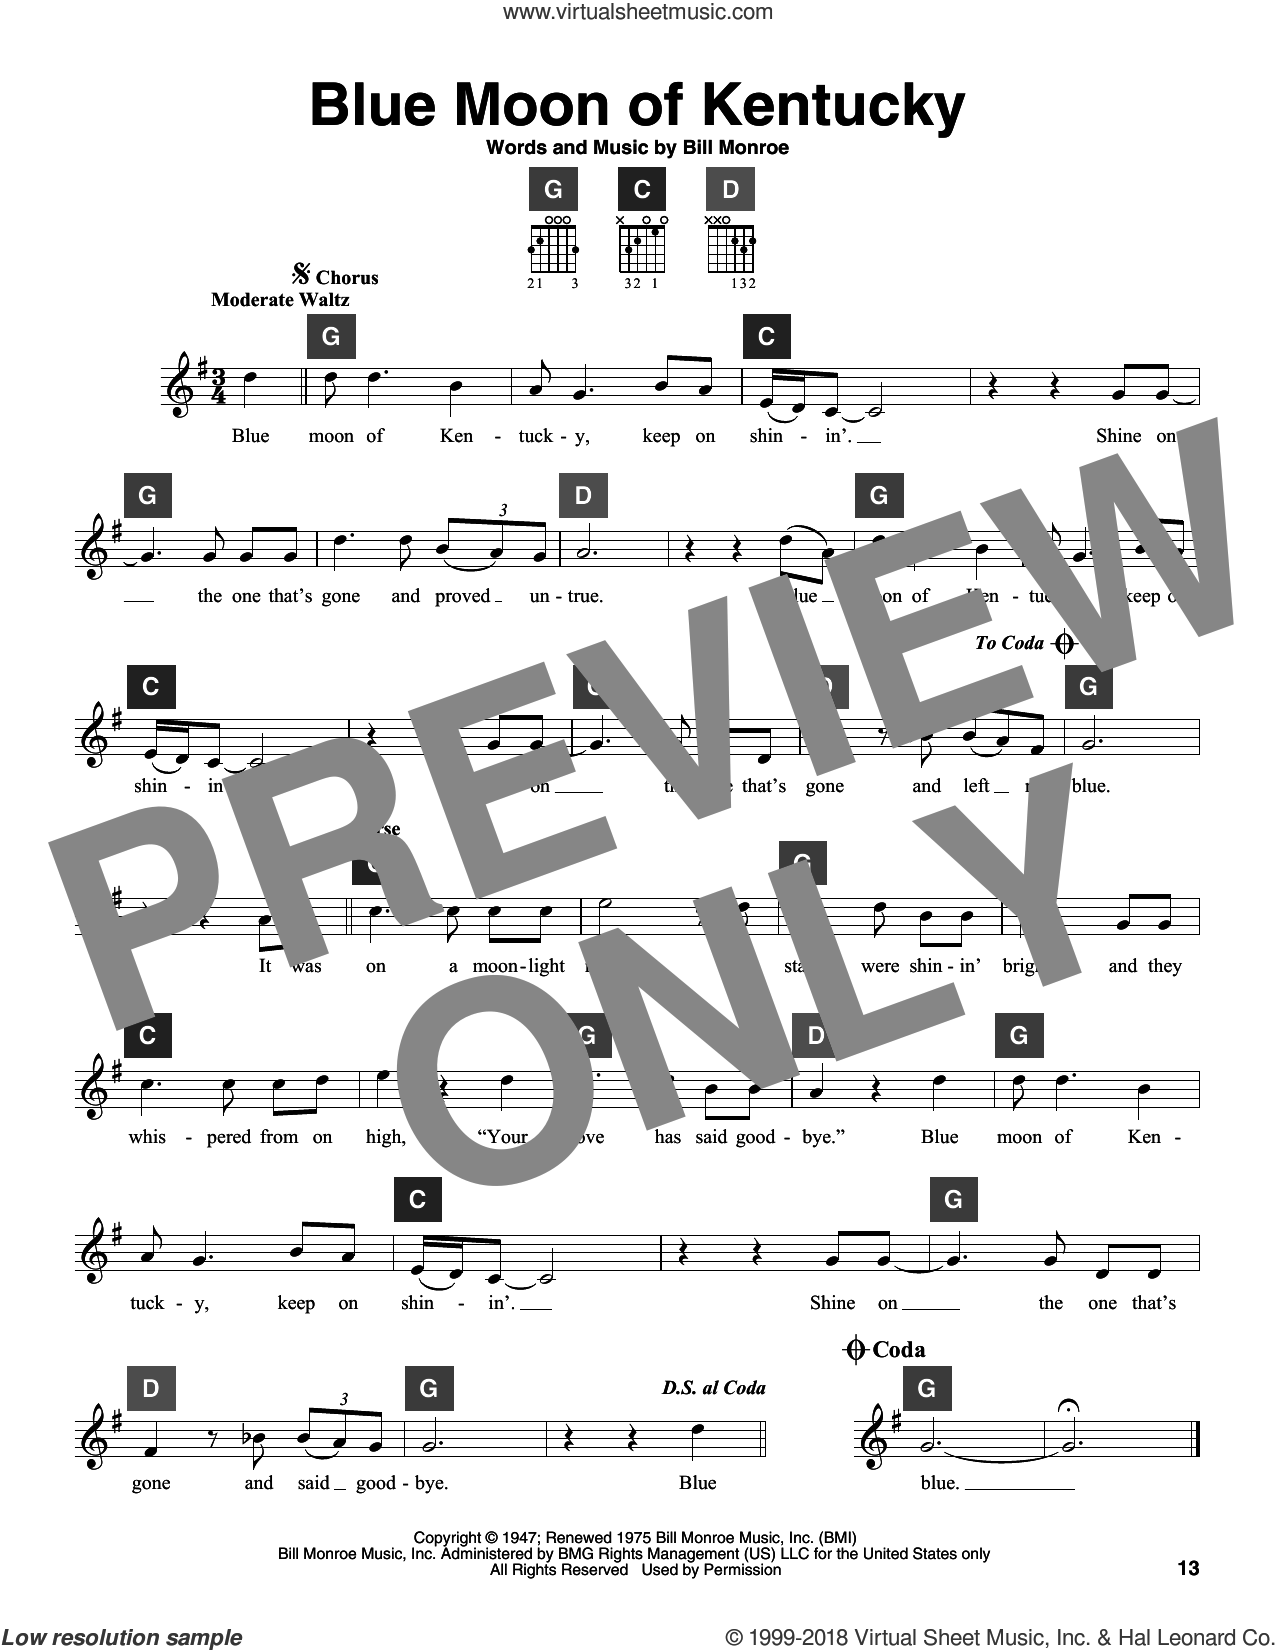 Blue Moon Of Kentucky sheet music for guitar solo (ChordBuddy system) by Bill Monroe, Elvis Presley and Patsy Cline, intermediate guitar (ChordBuddy system)